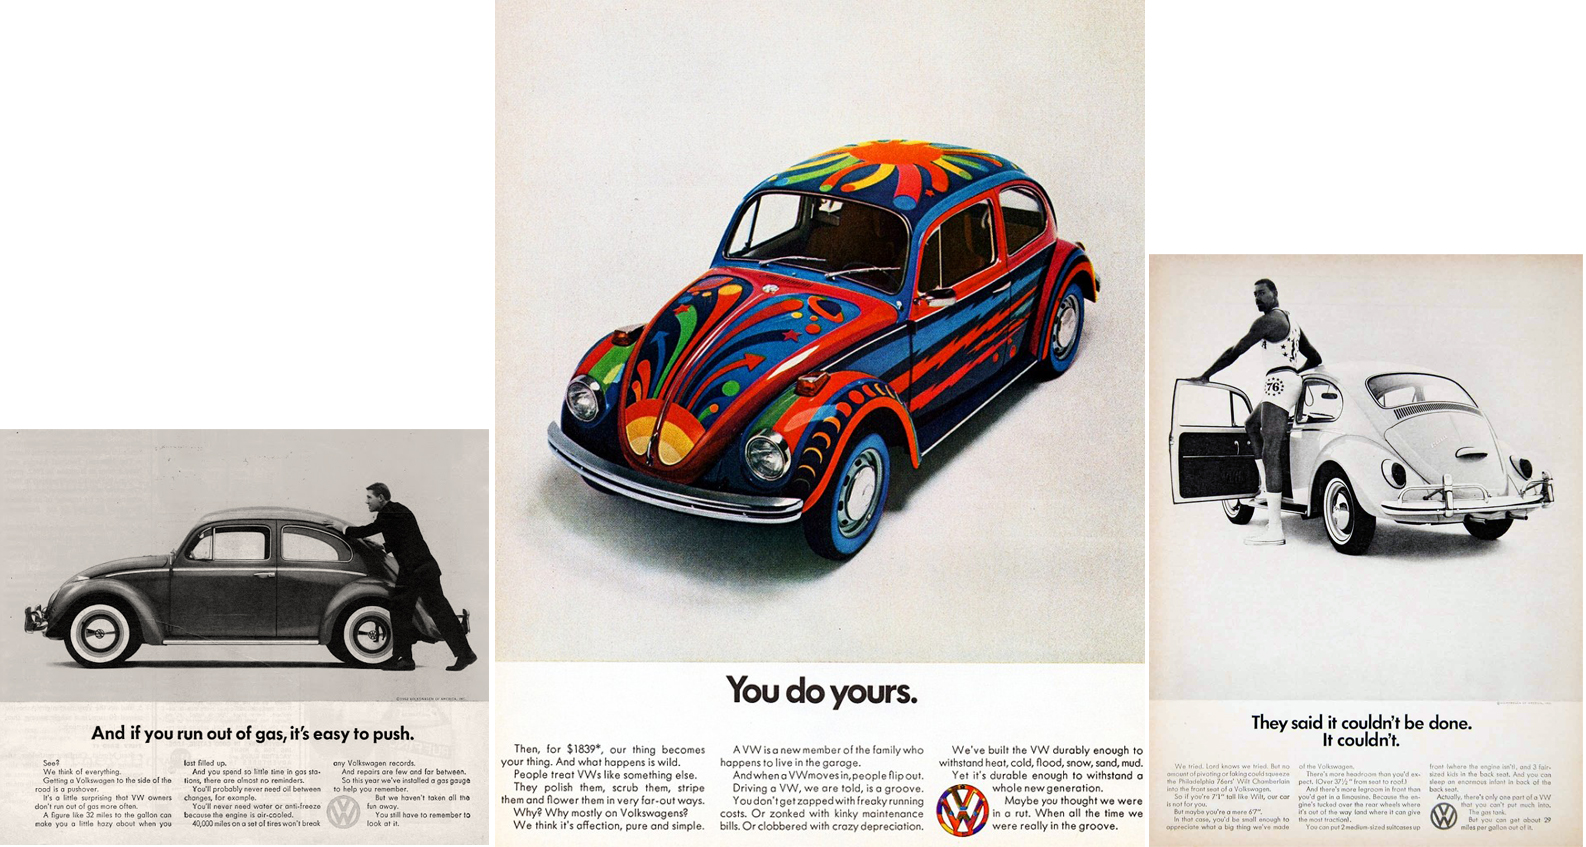 an analysis of the advertising campaign of the new volkswagen beetle Keywords: promotion, advertising, communication tools, marketing mix suggested citation: suggested citation pawar, sudarshan ashokrao and munagekar, ashwini g and bhosale, mandakini r.